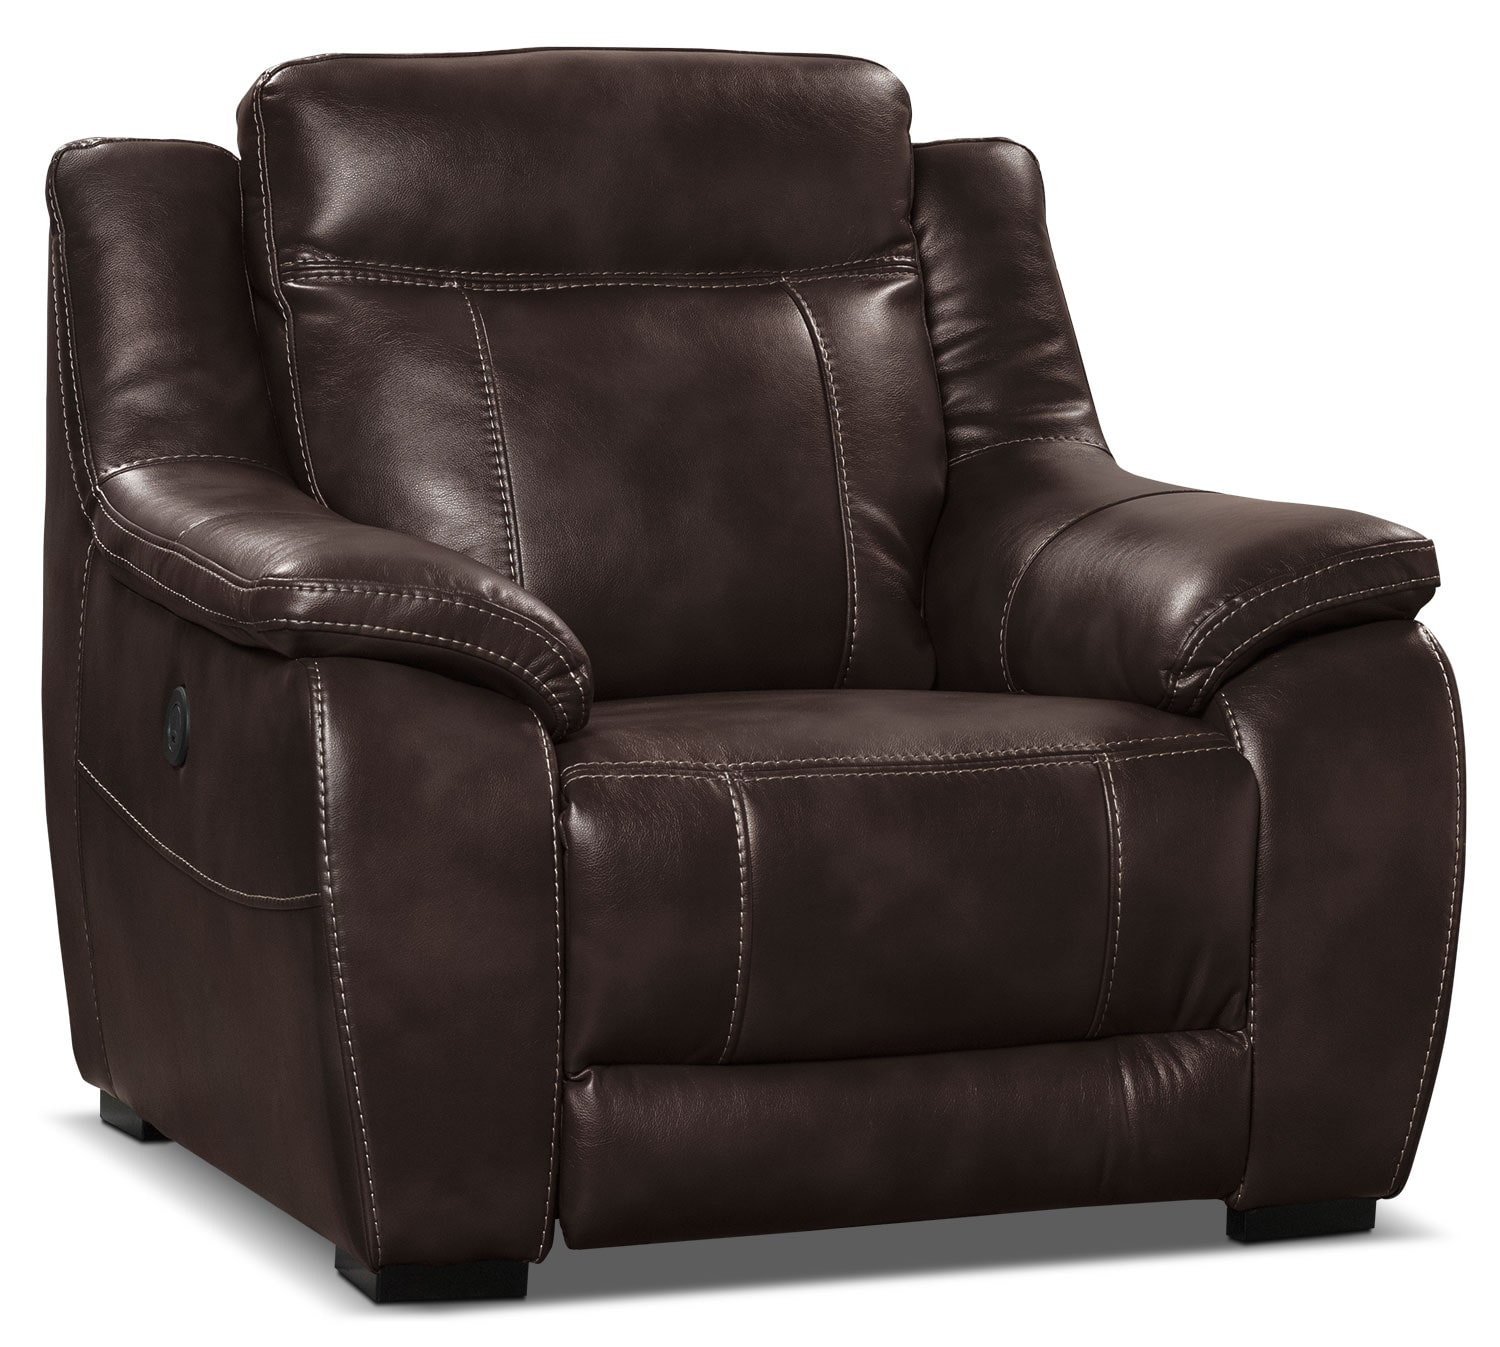 Power Reclining Chairs Novo Leather Look Fabric Power Reclining Chair Brown